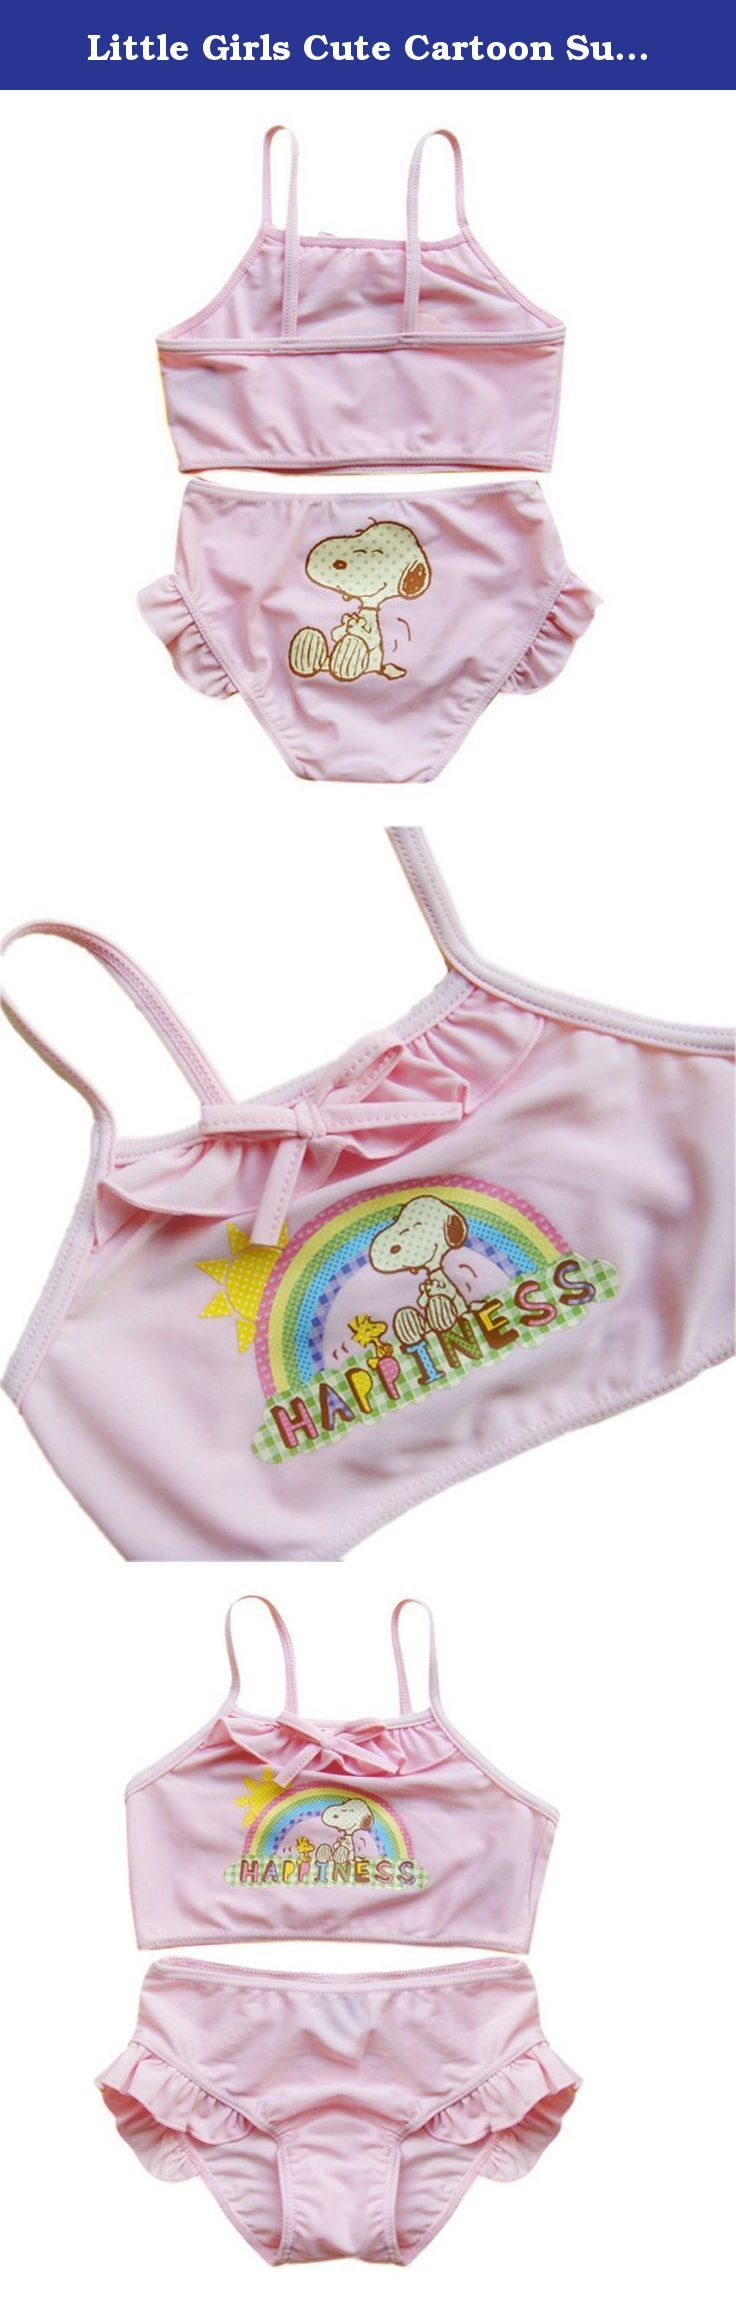 Little Girls Cute Cartoon Summer Sling Swimsuit Tankini,Pink,Size 2. Using natural fabrics such as cotton comfort, printing and dyeing are active green dye, to ensure natural health. High-end fabrics, unique technology, exquisite workmanship. Cartoon embroidered; No distortion, comfortable and breathable. Size : Height 2(18-24M): 35.5 inch (90cm); 3(2-3Y): 37.5 inch (95cm); 4(3-4Y): 38.5-41 inch (98-105cm); 5(4-5Y): 41.5-43 inch (105-110cm); 6(5-6Y): 43.5-47 inch (110-120cm). .